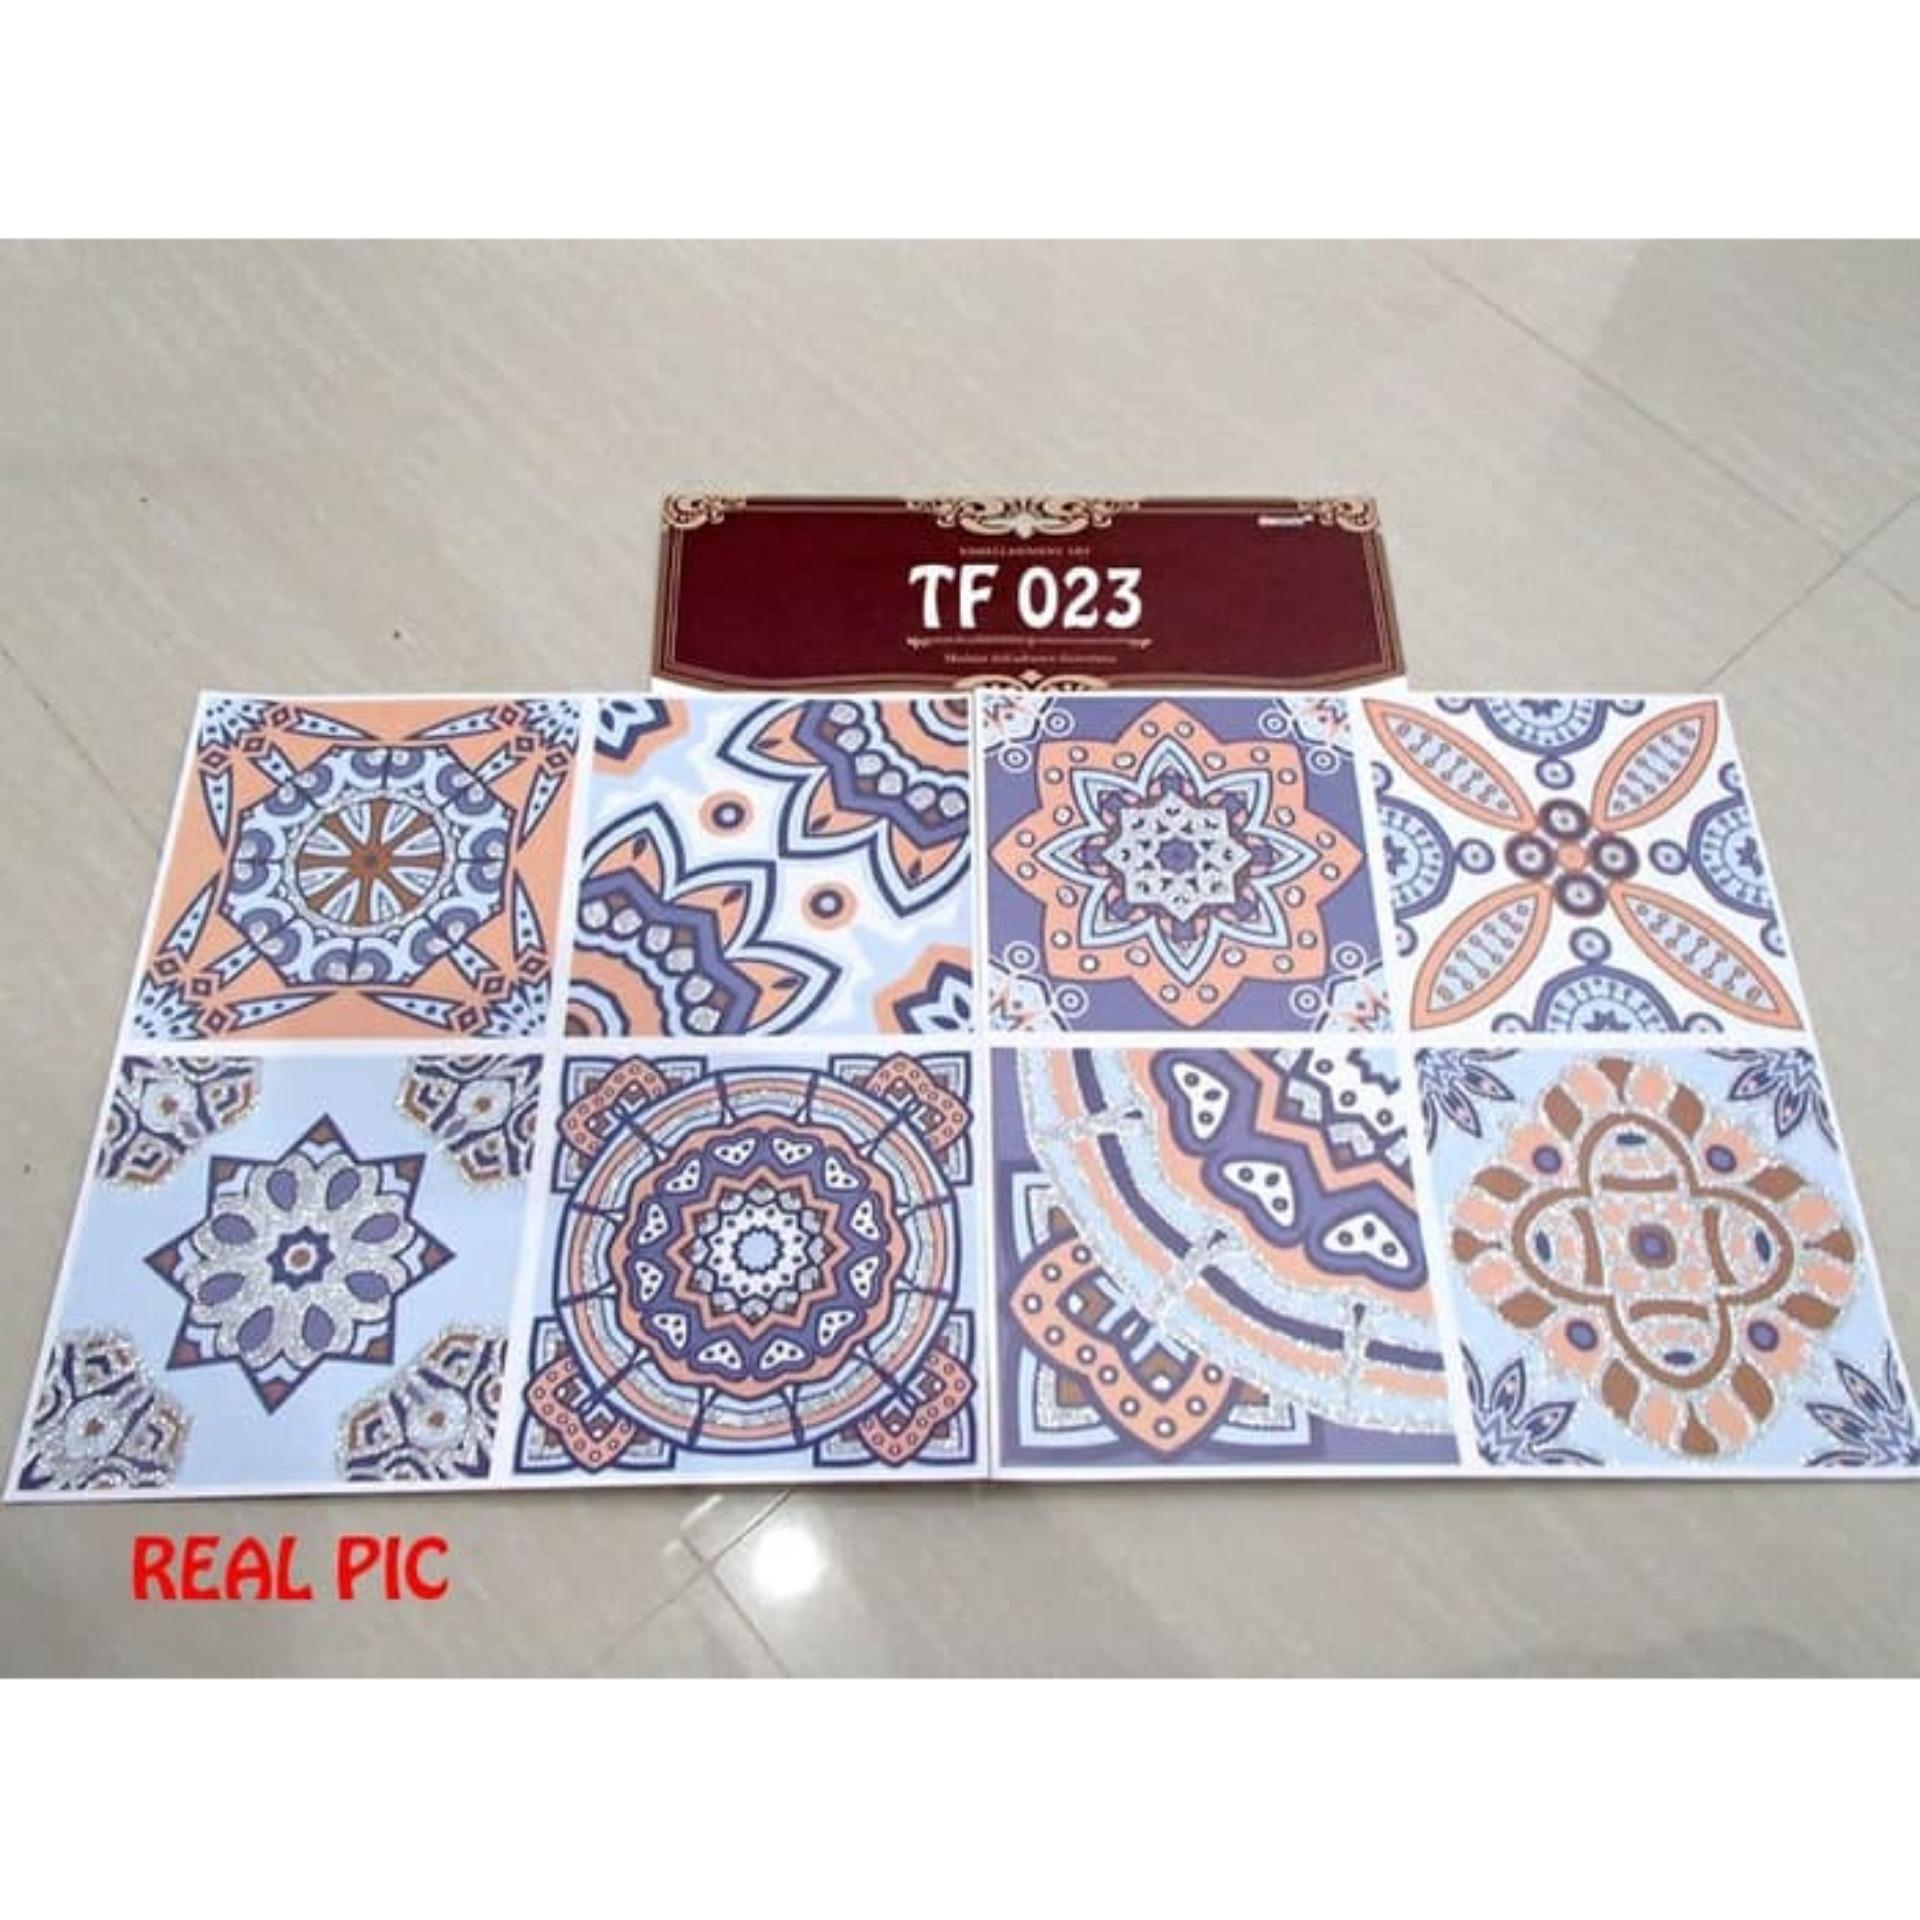 Jual Tegel Wallpaper Tegel Kode Gmtf023